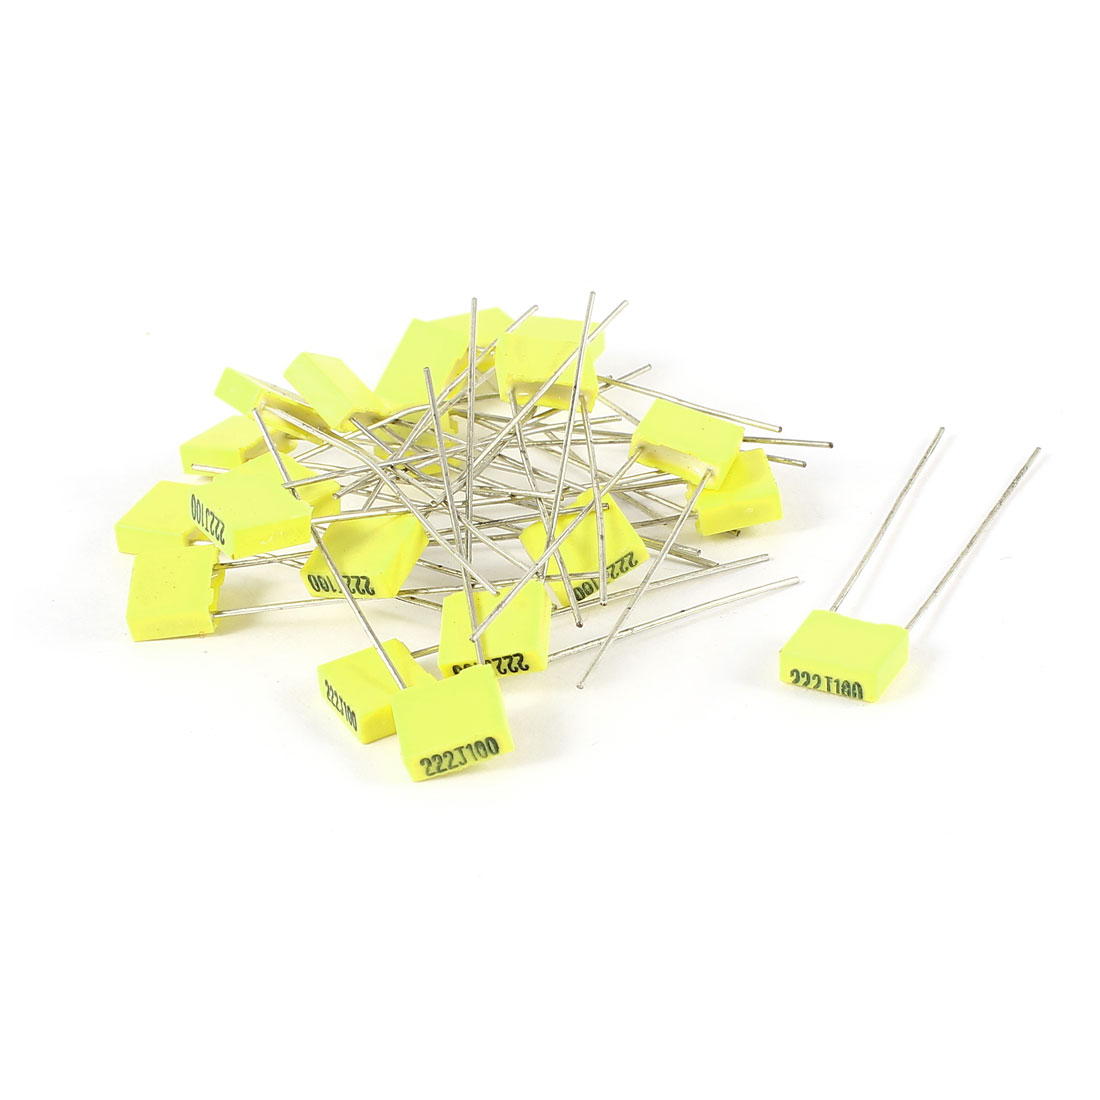 20 Pcs 100V 2.2NF Radial Lead Box Type Film Correction Capacitors Yellow